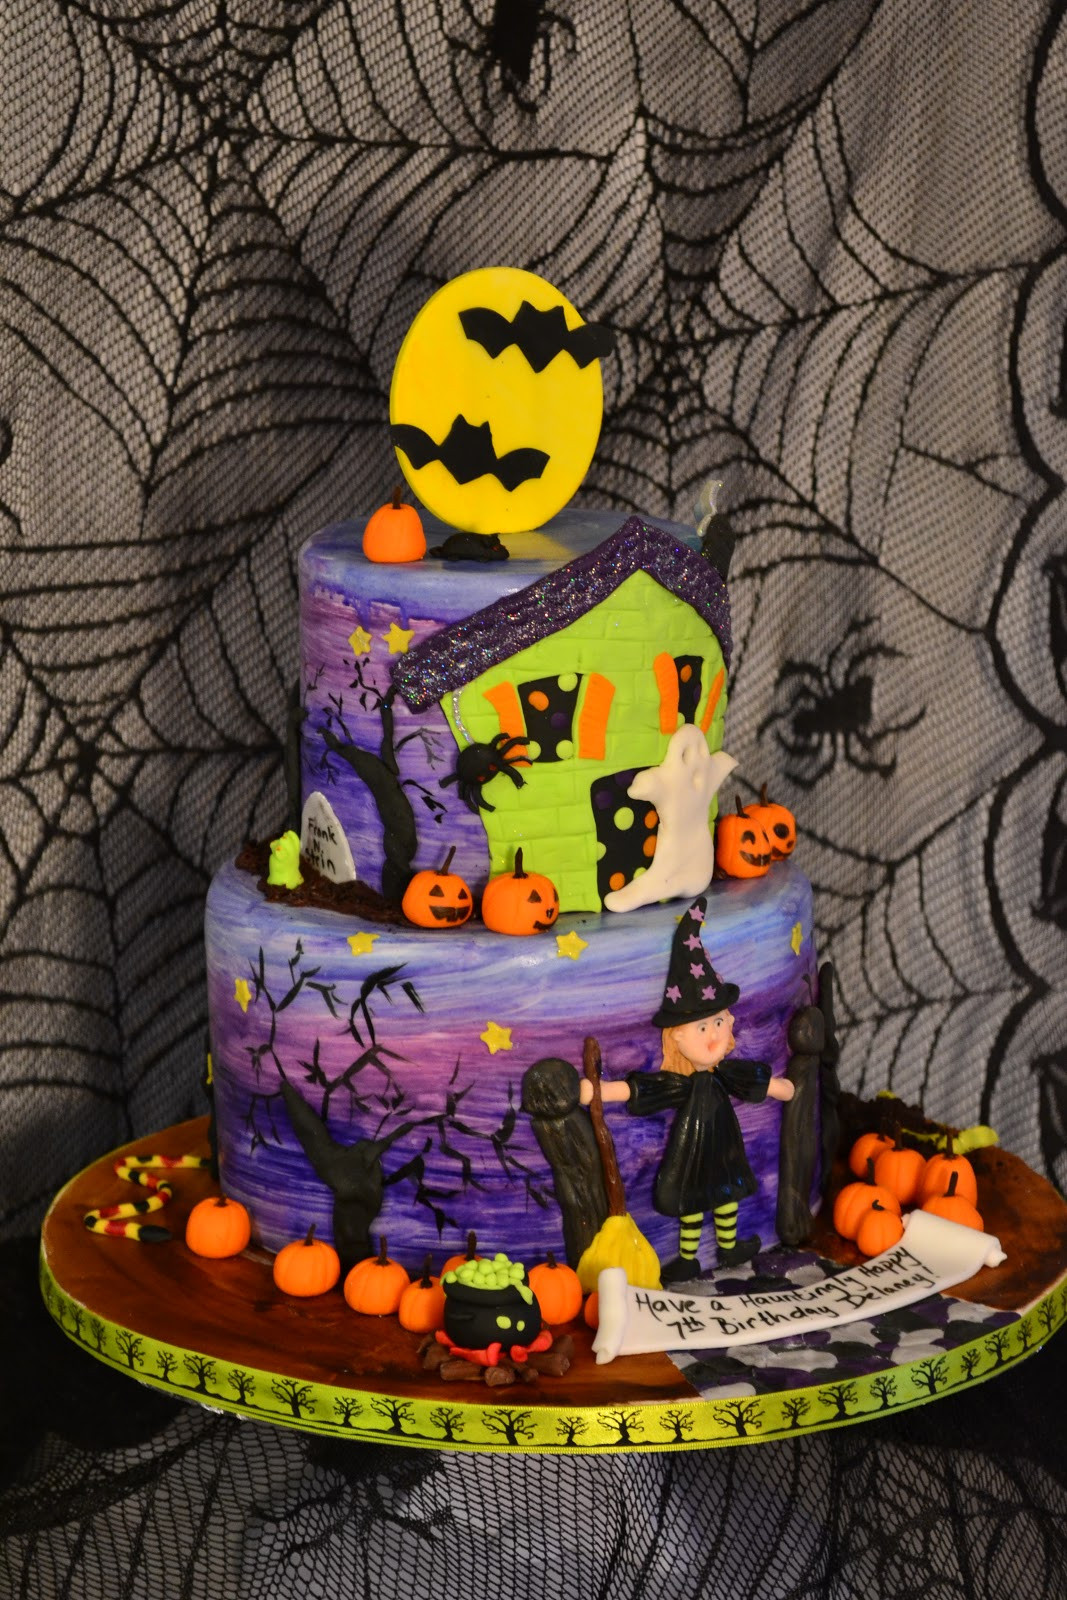 Halloween Birthday Cakes Pictures  Oh just put a cupcake in it Halloween birthday cake